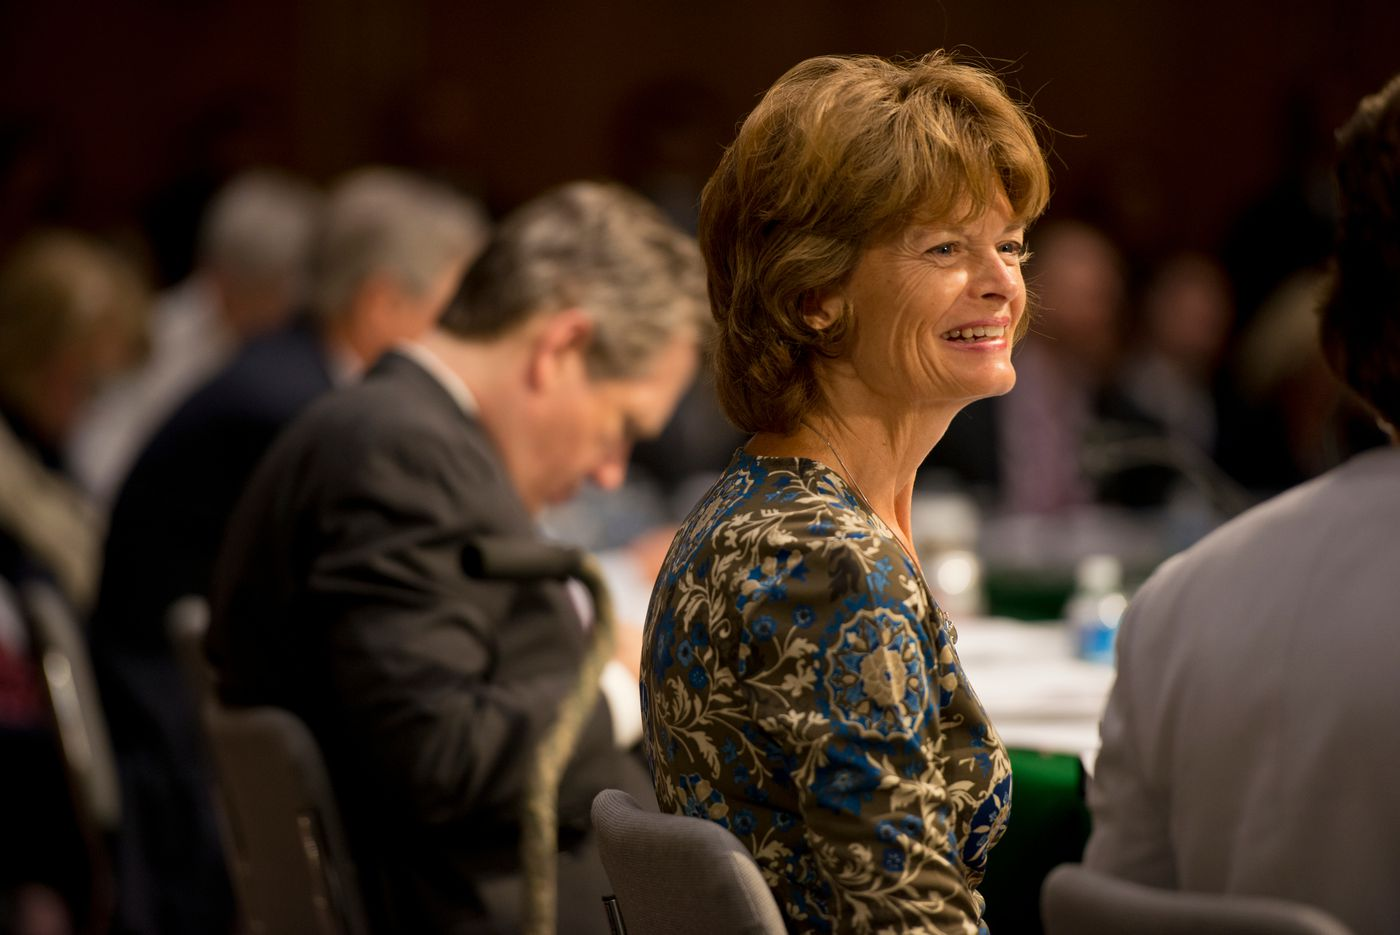 Sen. Lisa Murkowski participates in a Senate Appropriations Committee meeting in the Dirksen Senate office building on Thursday, June 25, 2015. (Marc Lester / Alaska Dispatch News )